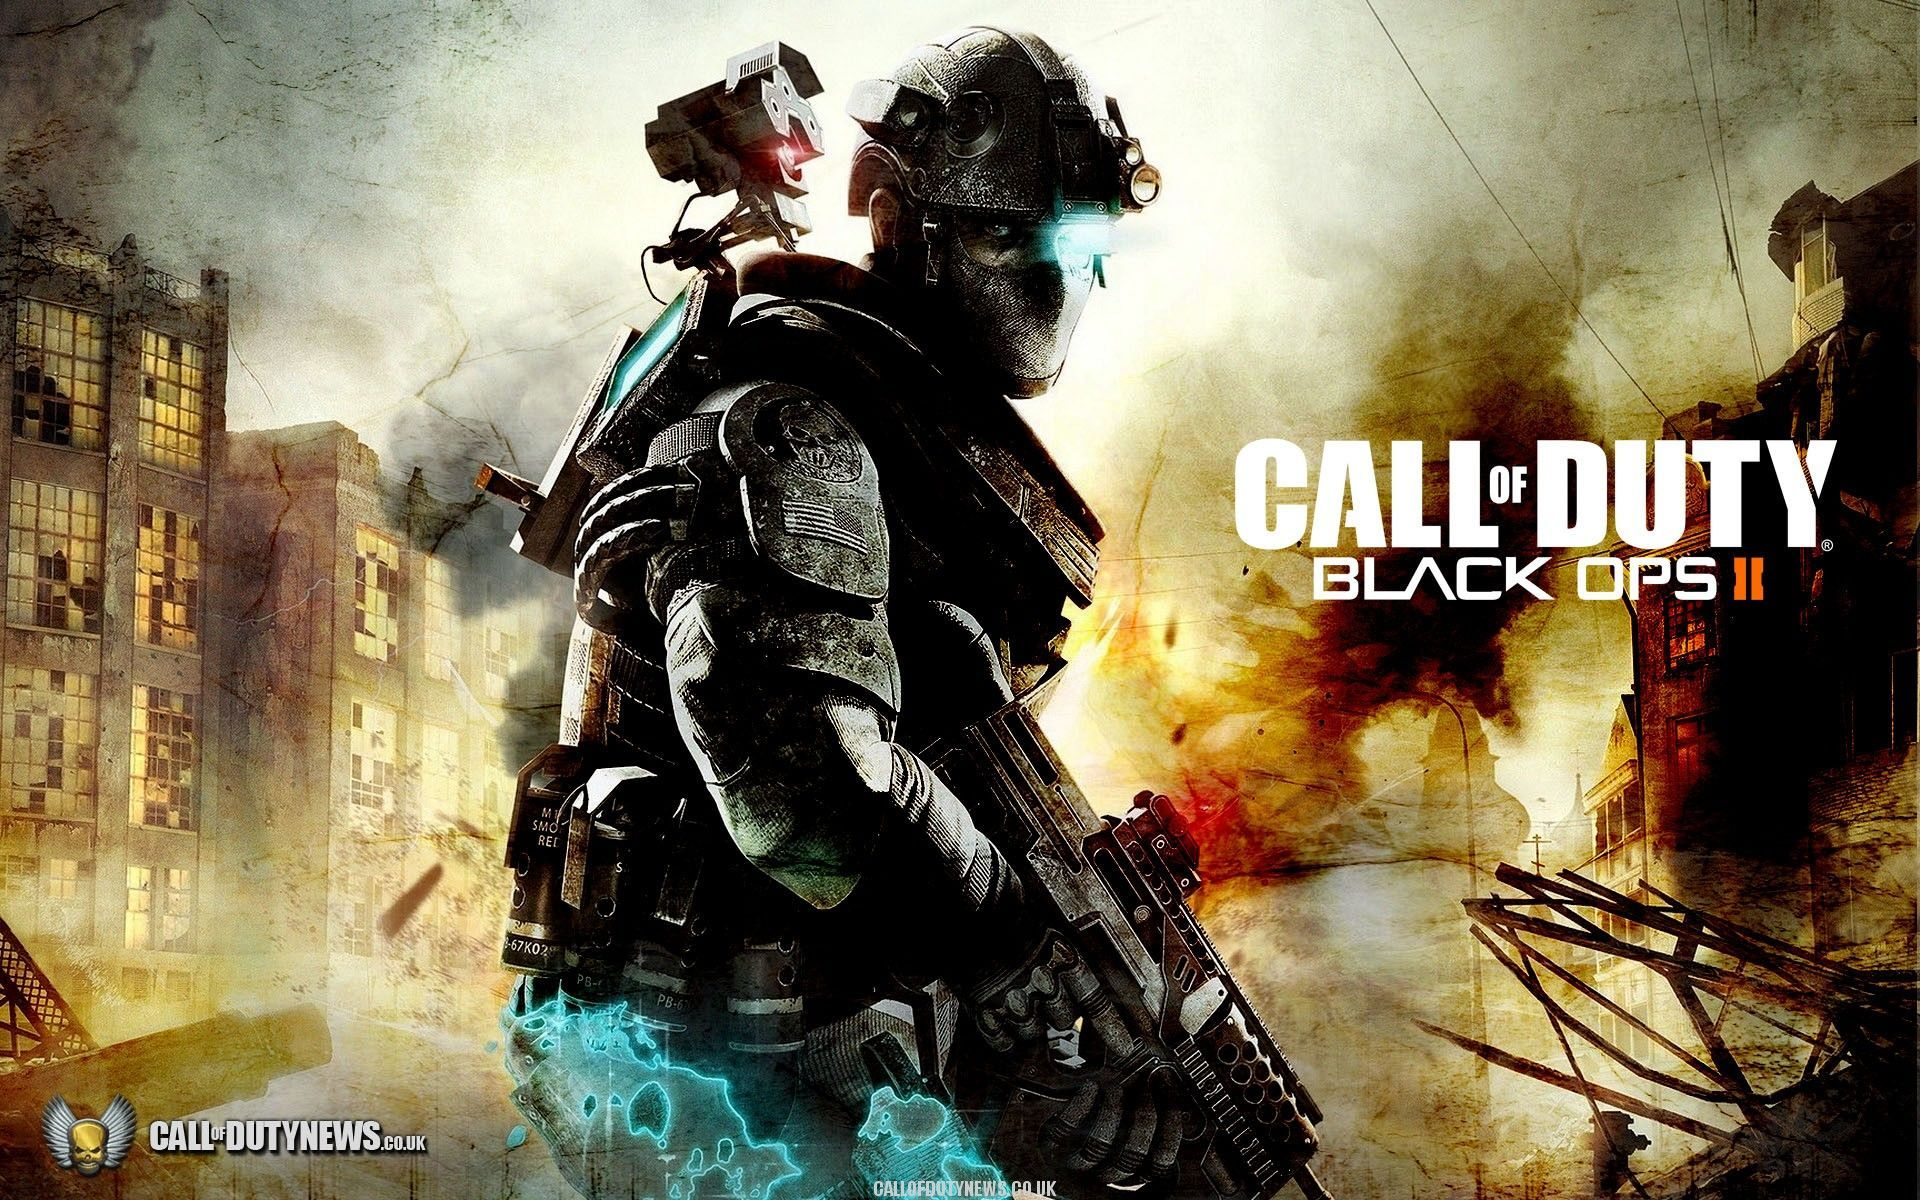 call of duty wallpapers zombies on markinternational | call of